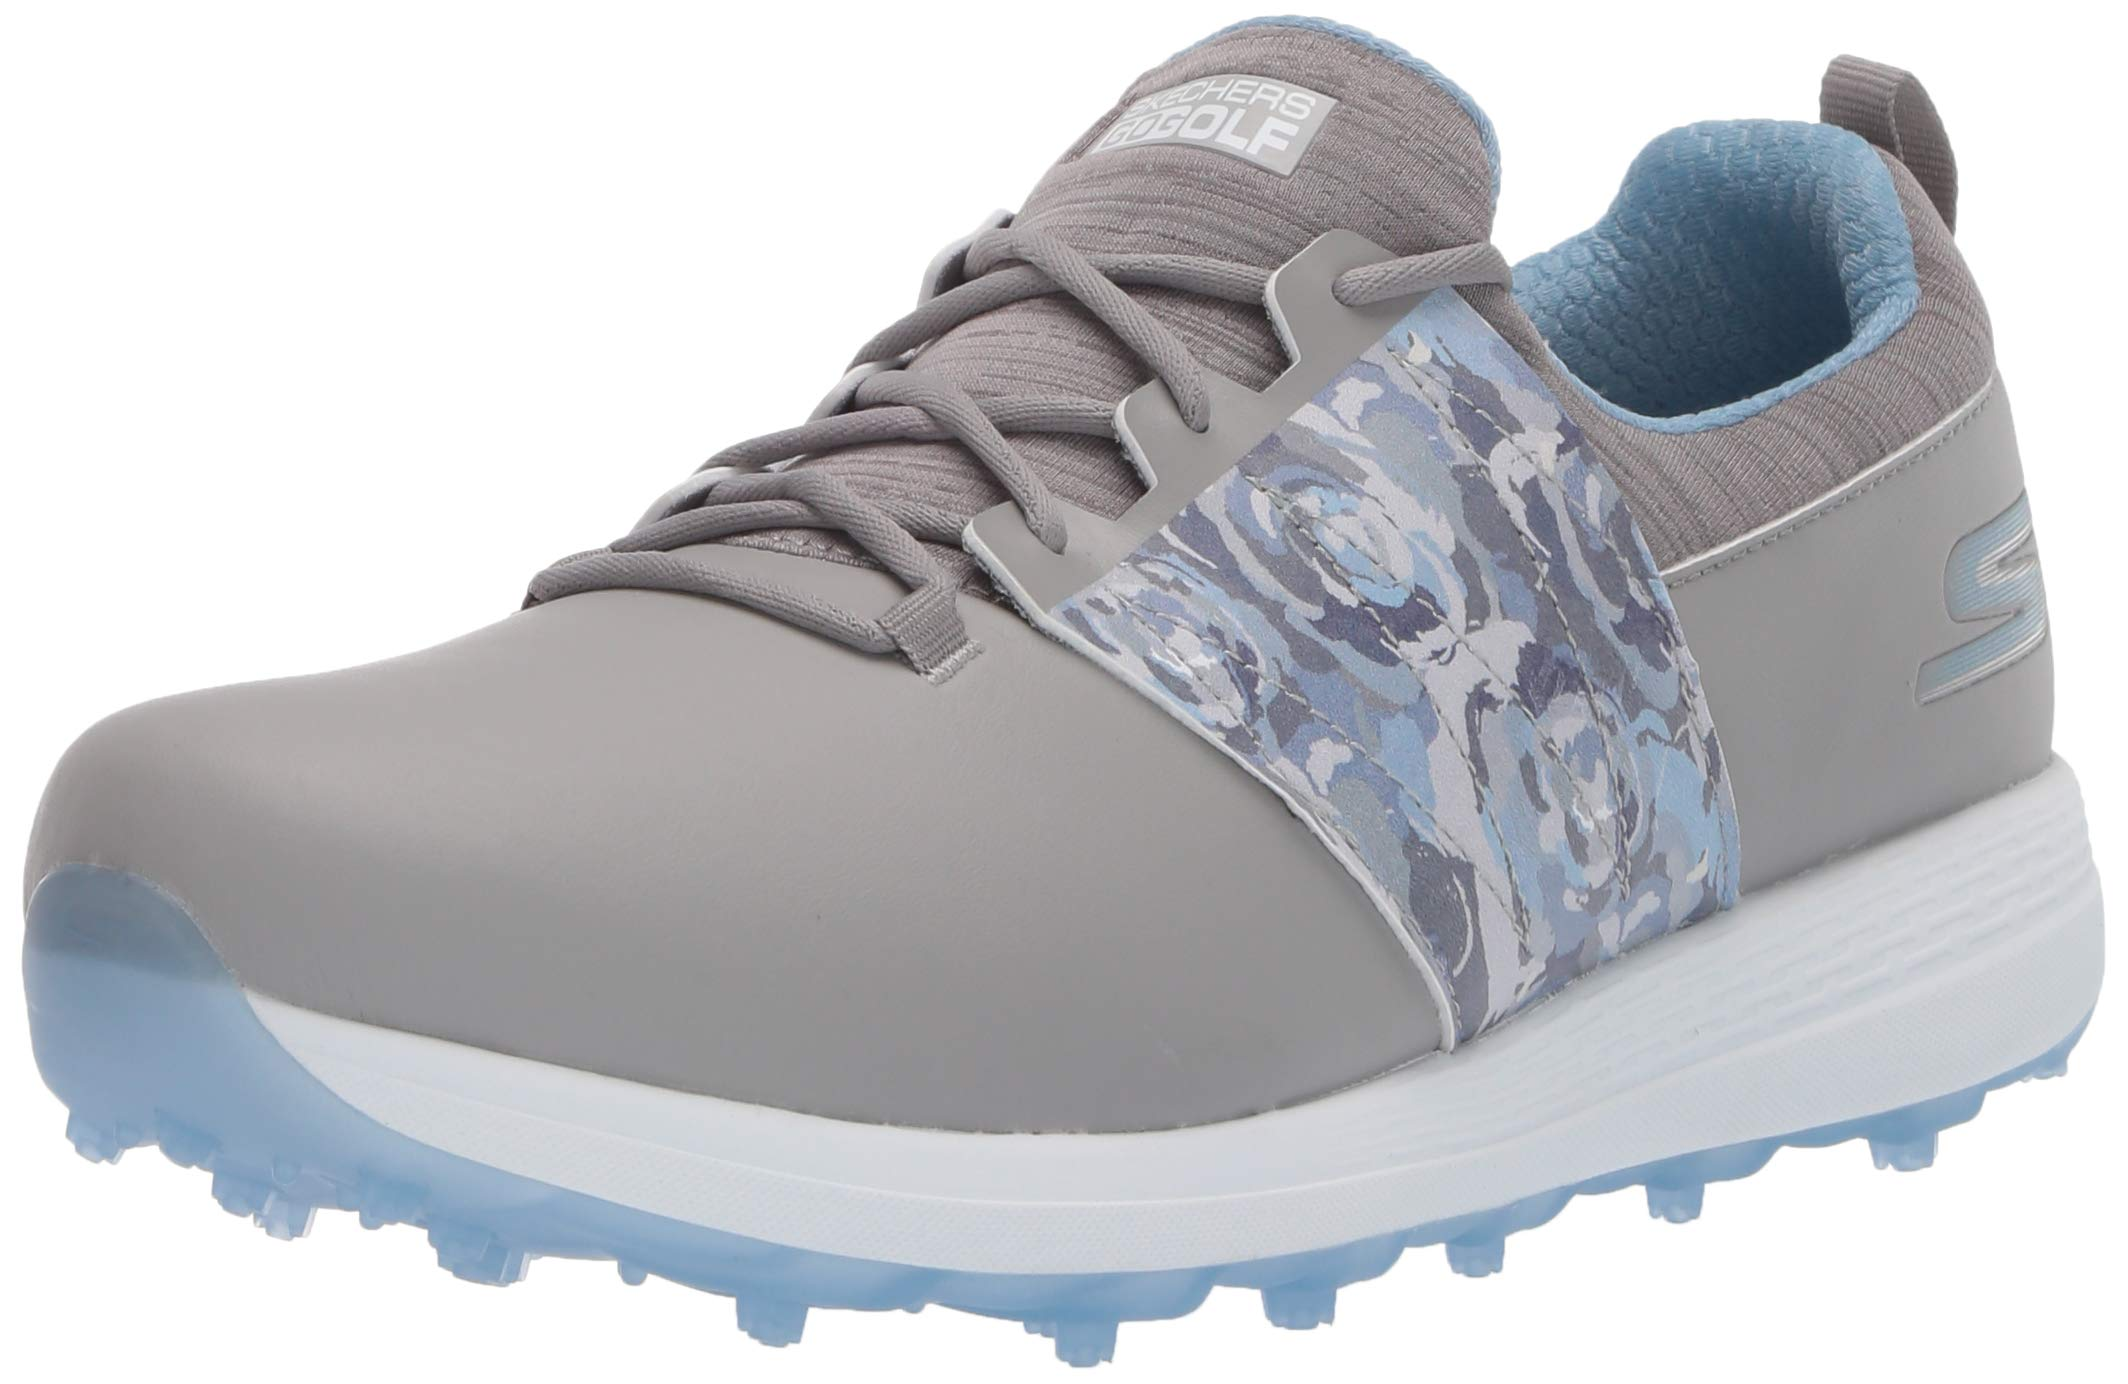 Skechers Women's Eagle Spikeless Golf Shoe, Gray/Blue Floral, 8.5 W US by Skechers